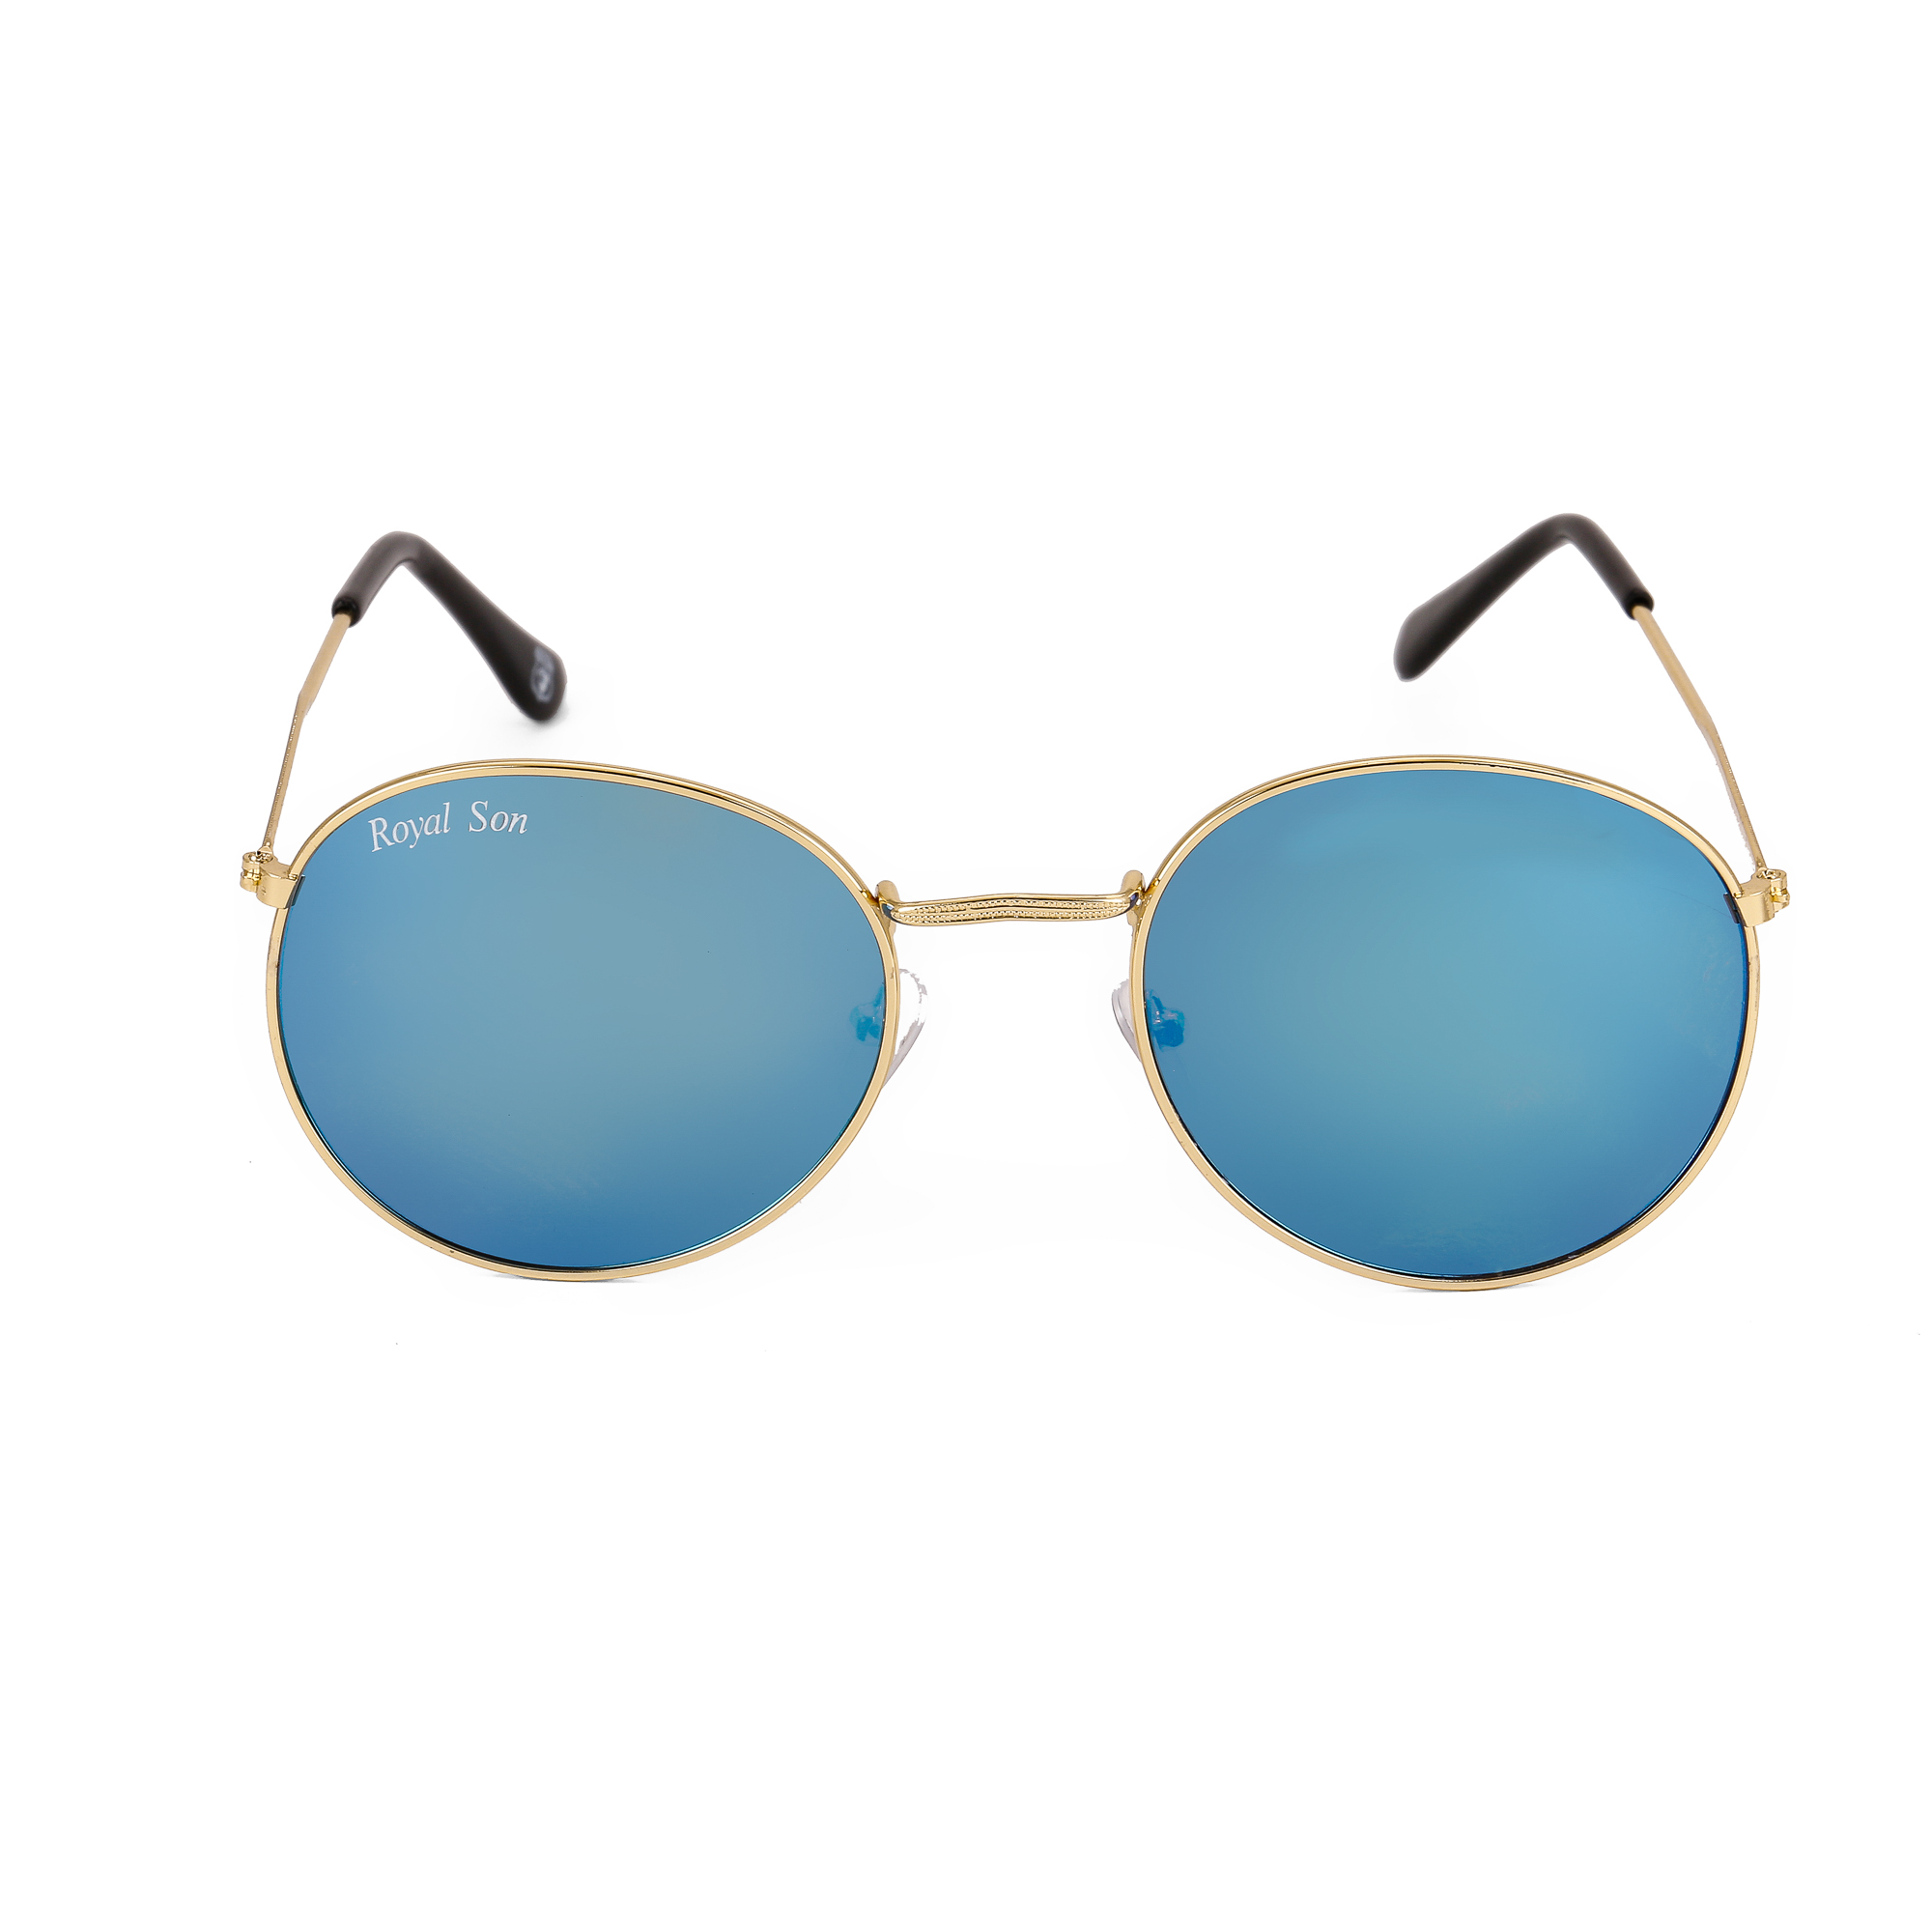 Royal Son Gold Metal Round Frames Sunglasses For Men